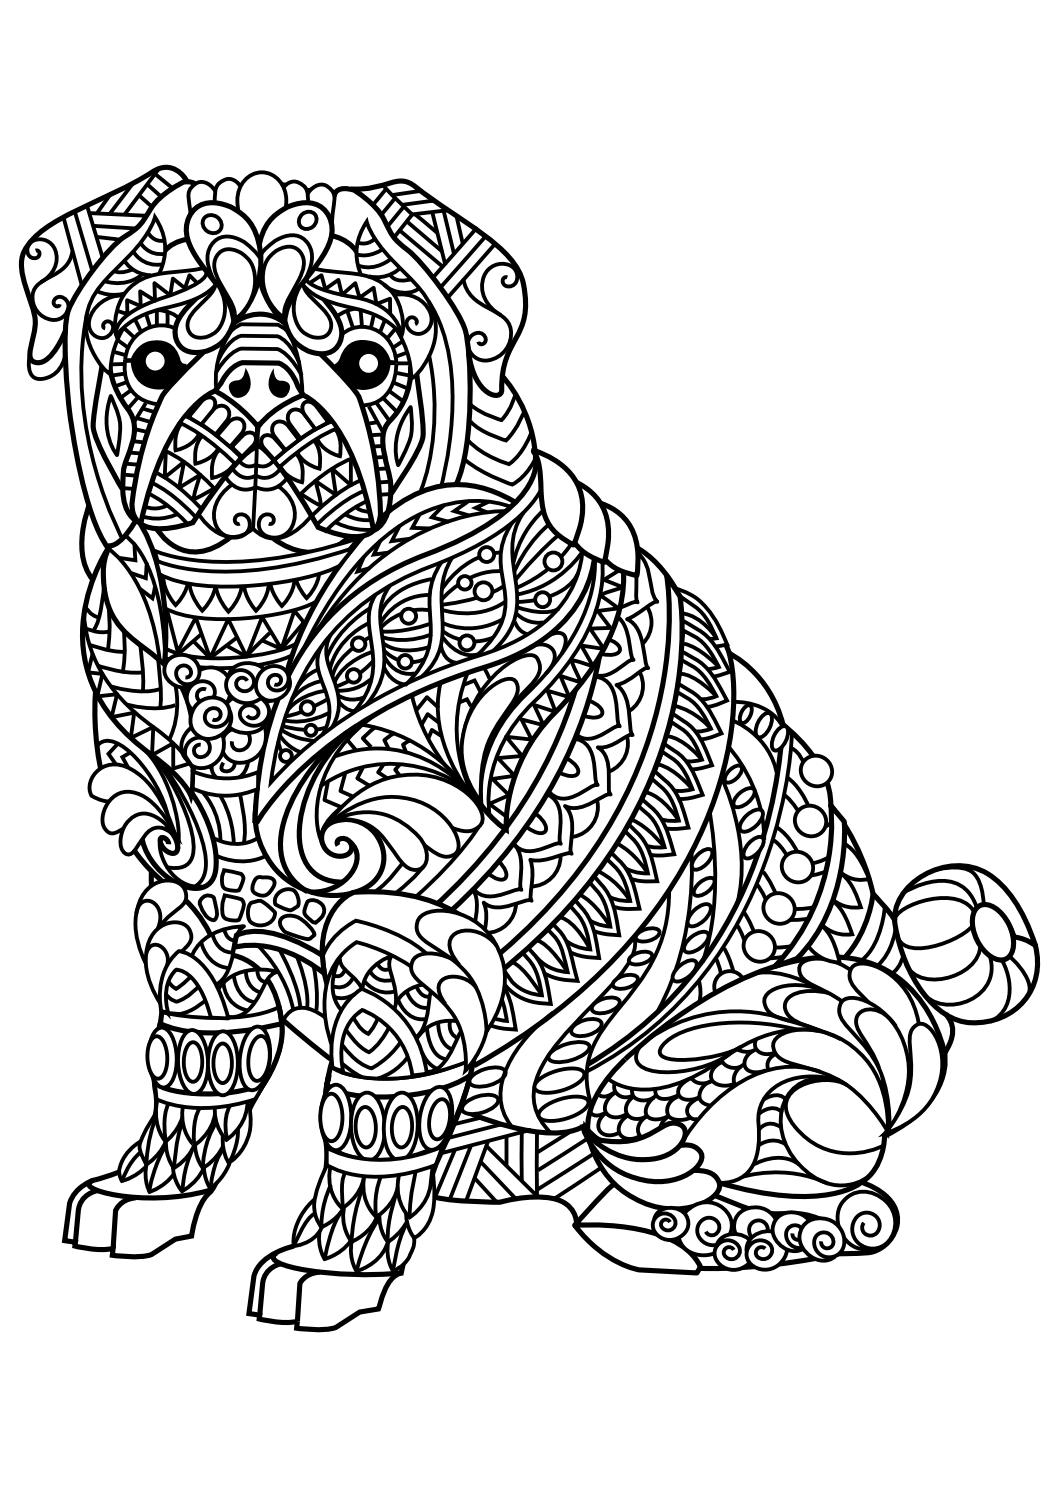 Bassett Hound Coloring Pages  to Print 16q - To print for your project